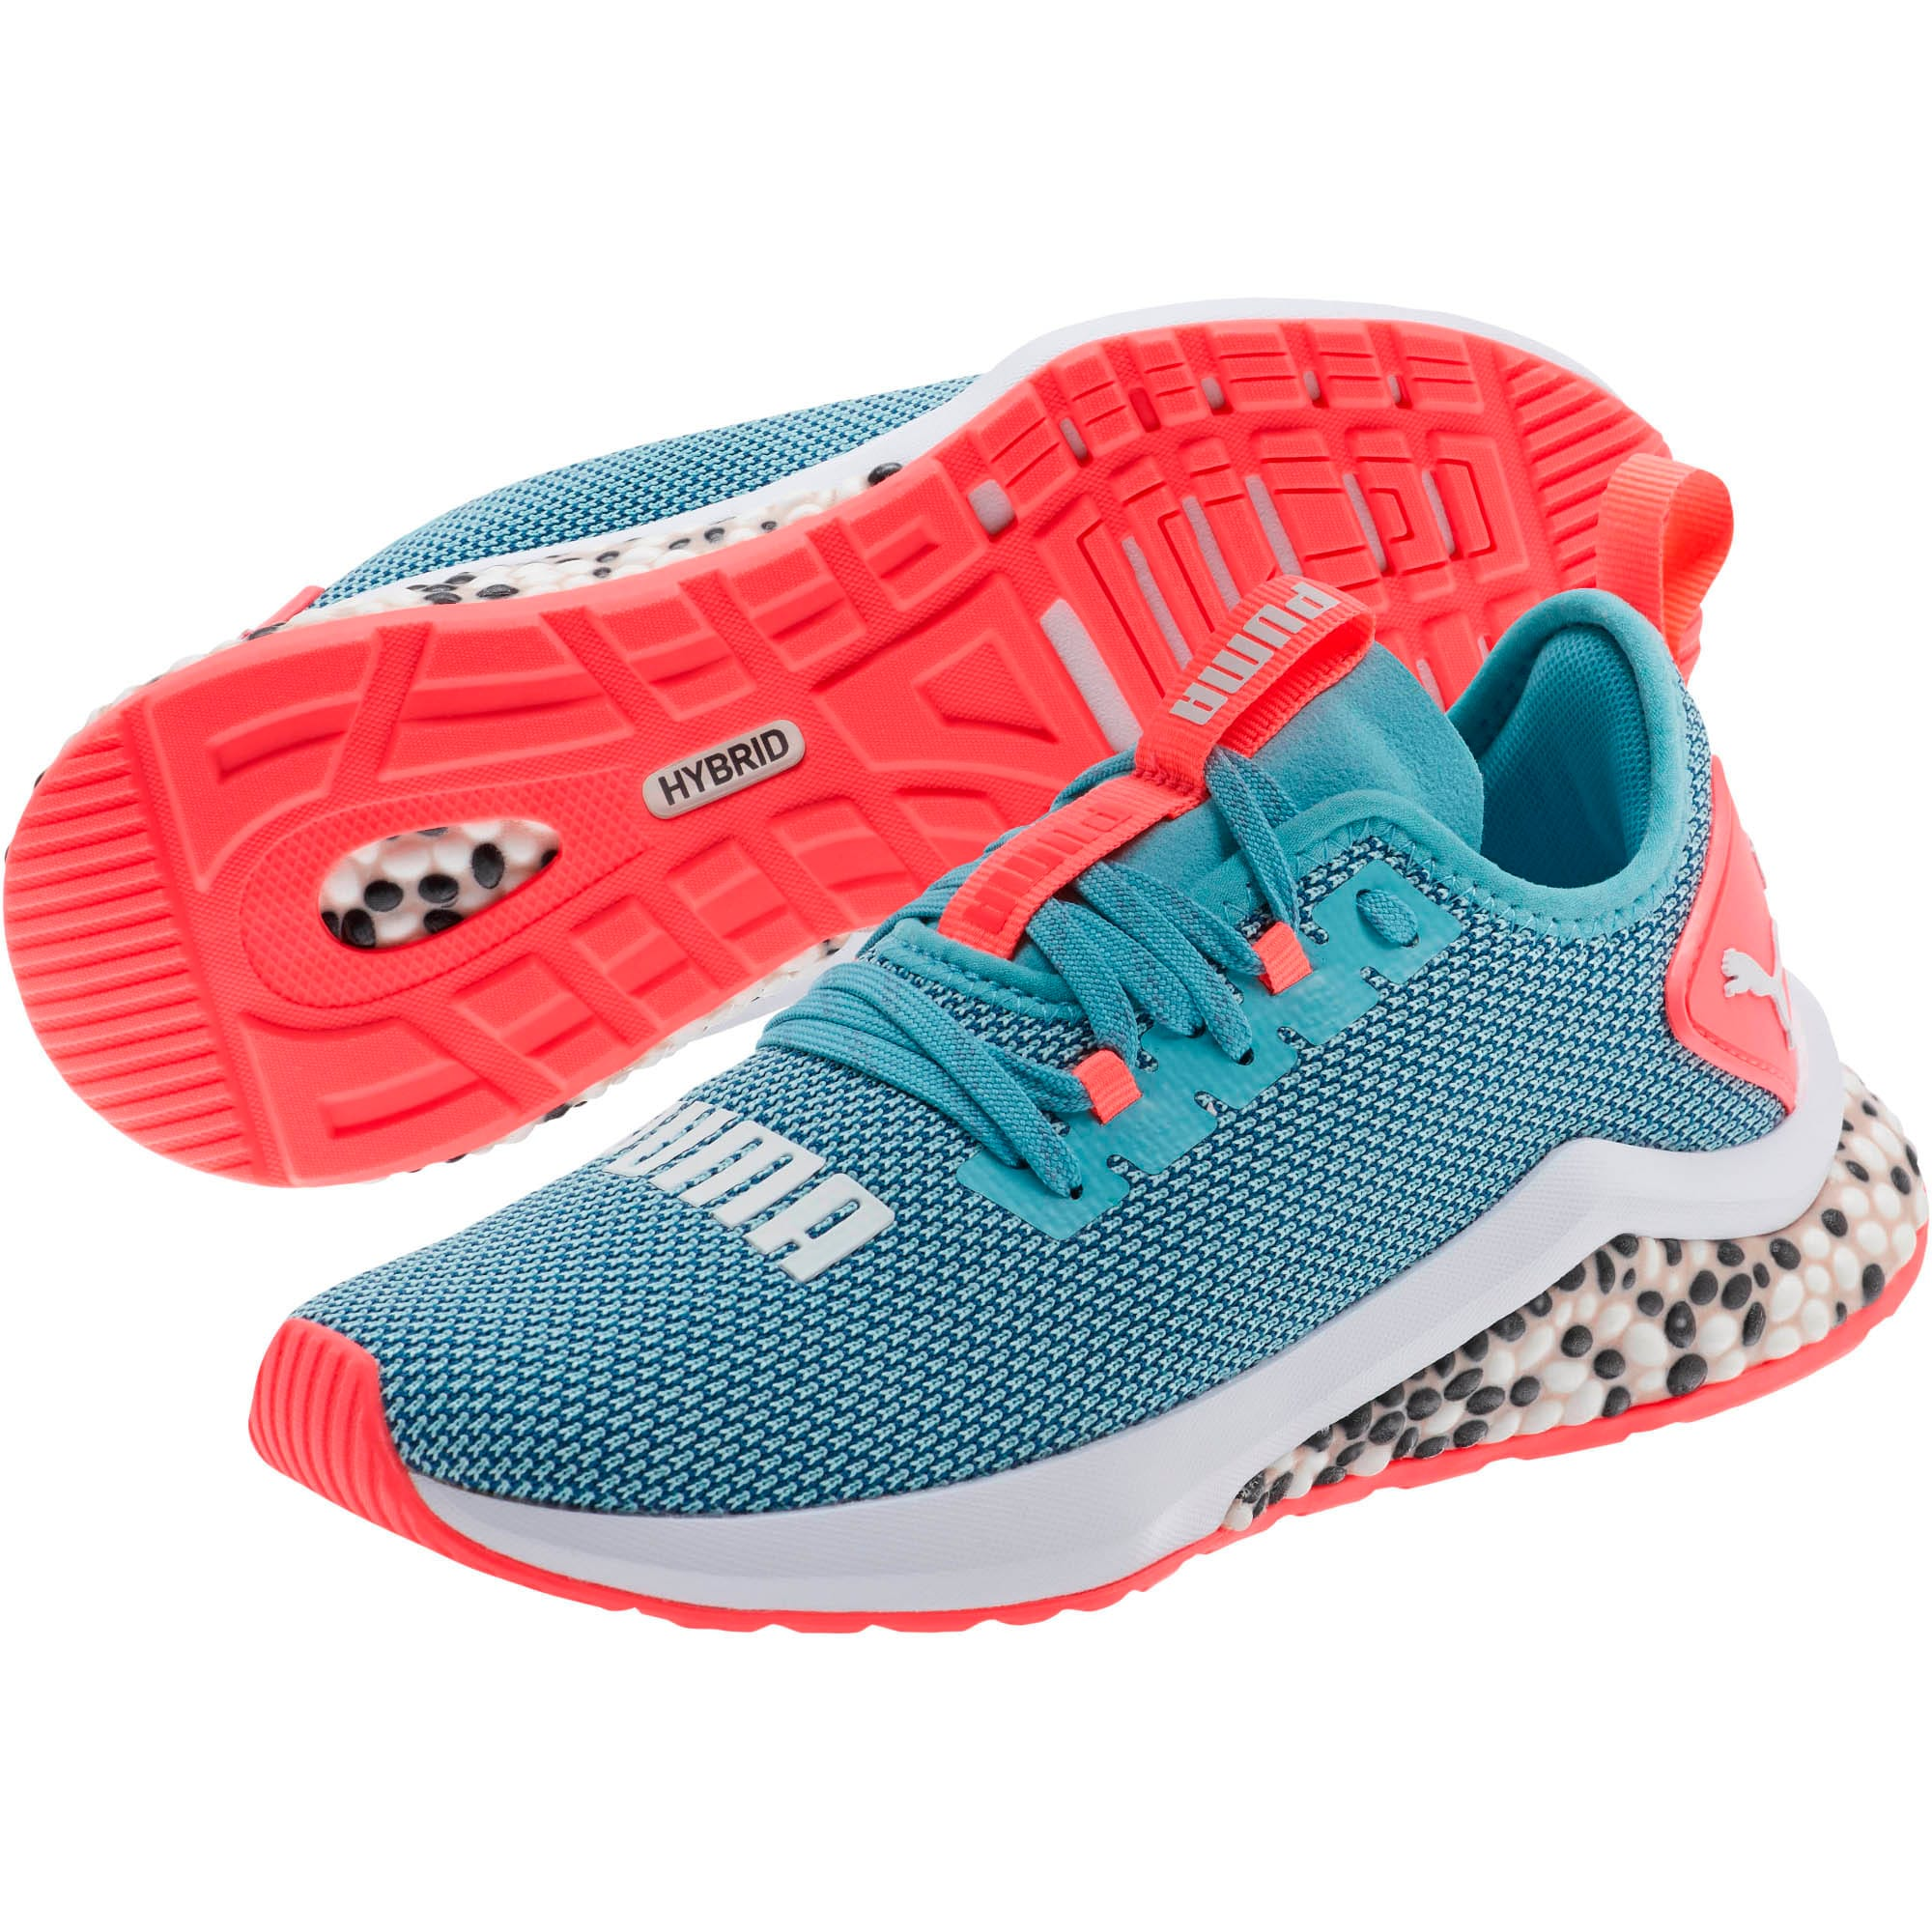 Thumbnail 2 of HYBRID NX Running Shoes JR, Milky Blue-Calypso Coral-Wht, medium